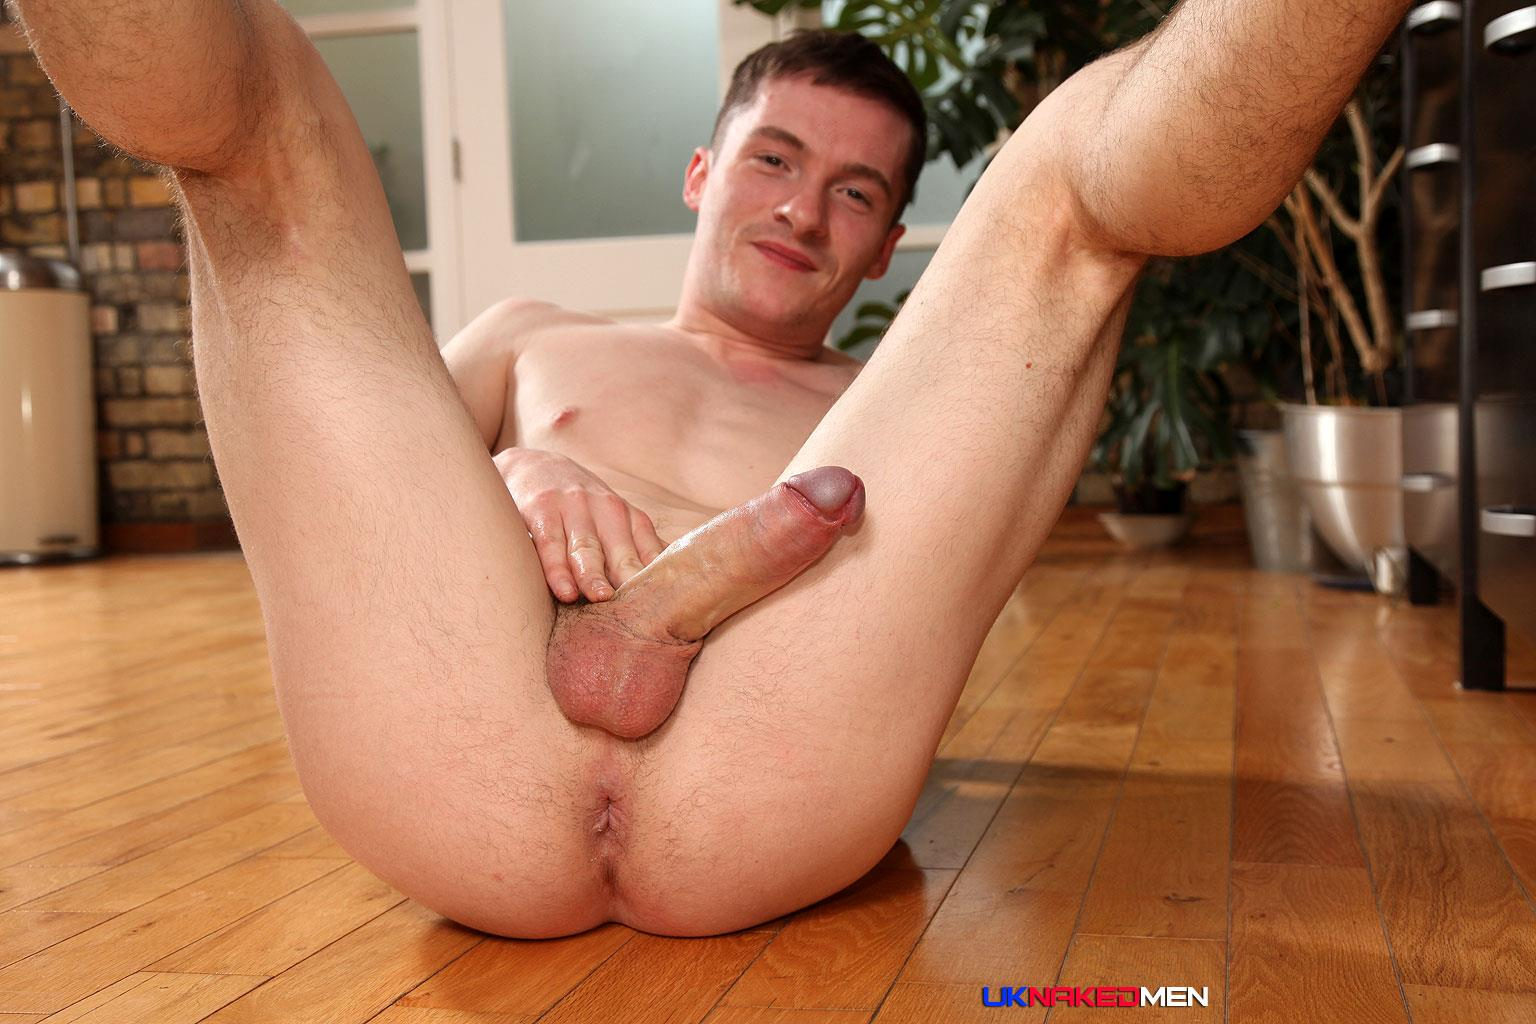 UK Naked Men Daniel James Young British Guy Jerking His Big Uncut Cock Amateur Gay Porn 18 Young British Guy Jerking Off A Huge Uncut Cock